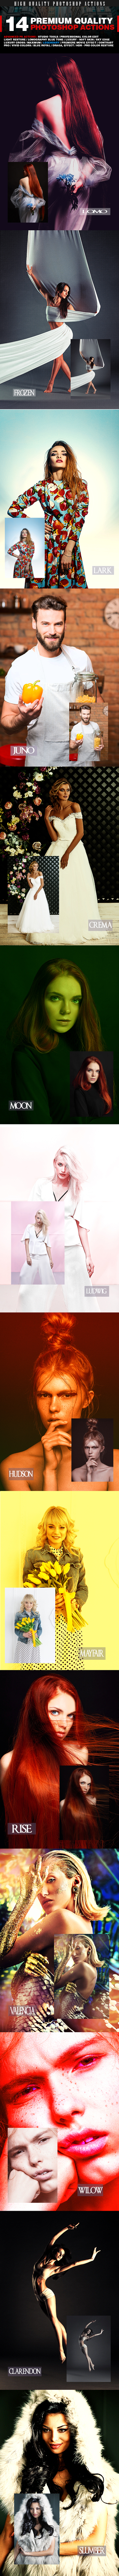 GraphicRiver 14 Professional Photo Effects 20602341